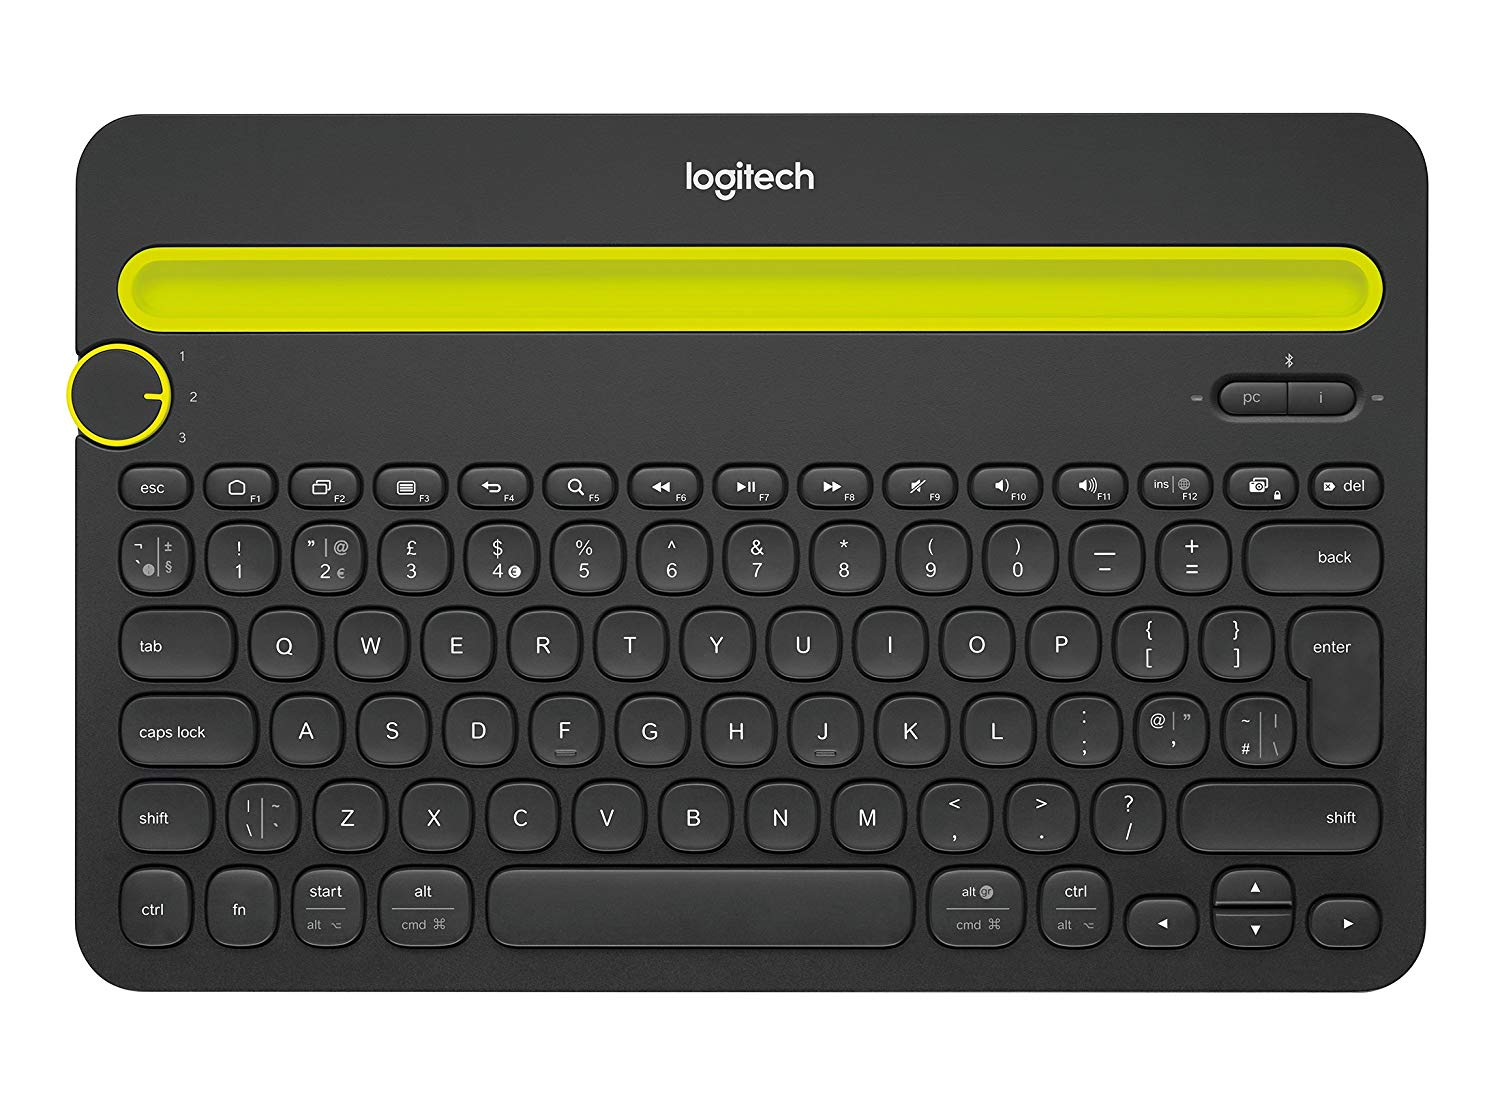 Logitech Multi-Device K480 - Keyboard - Bluetooth - UK Layout